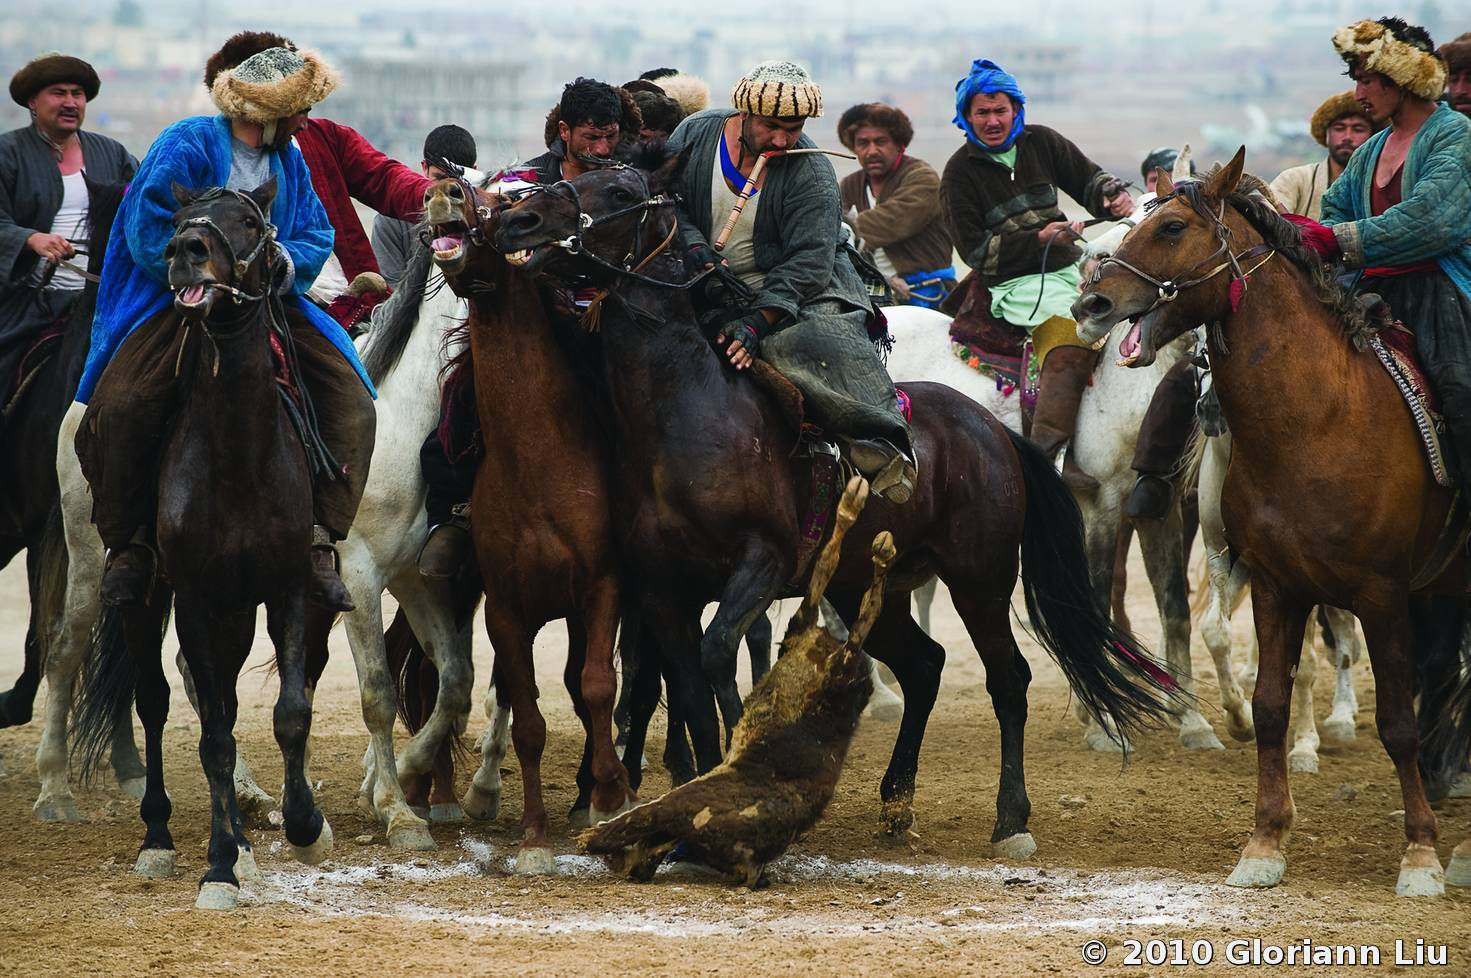 Buzkashi-5 by Gloriann Liu | Black & White Magazine